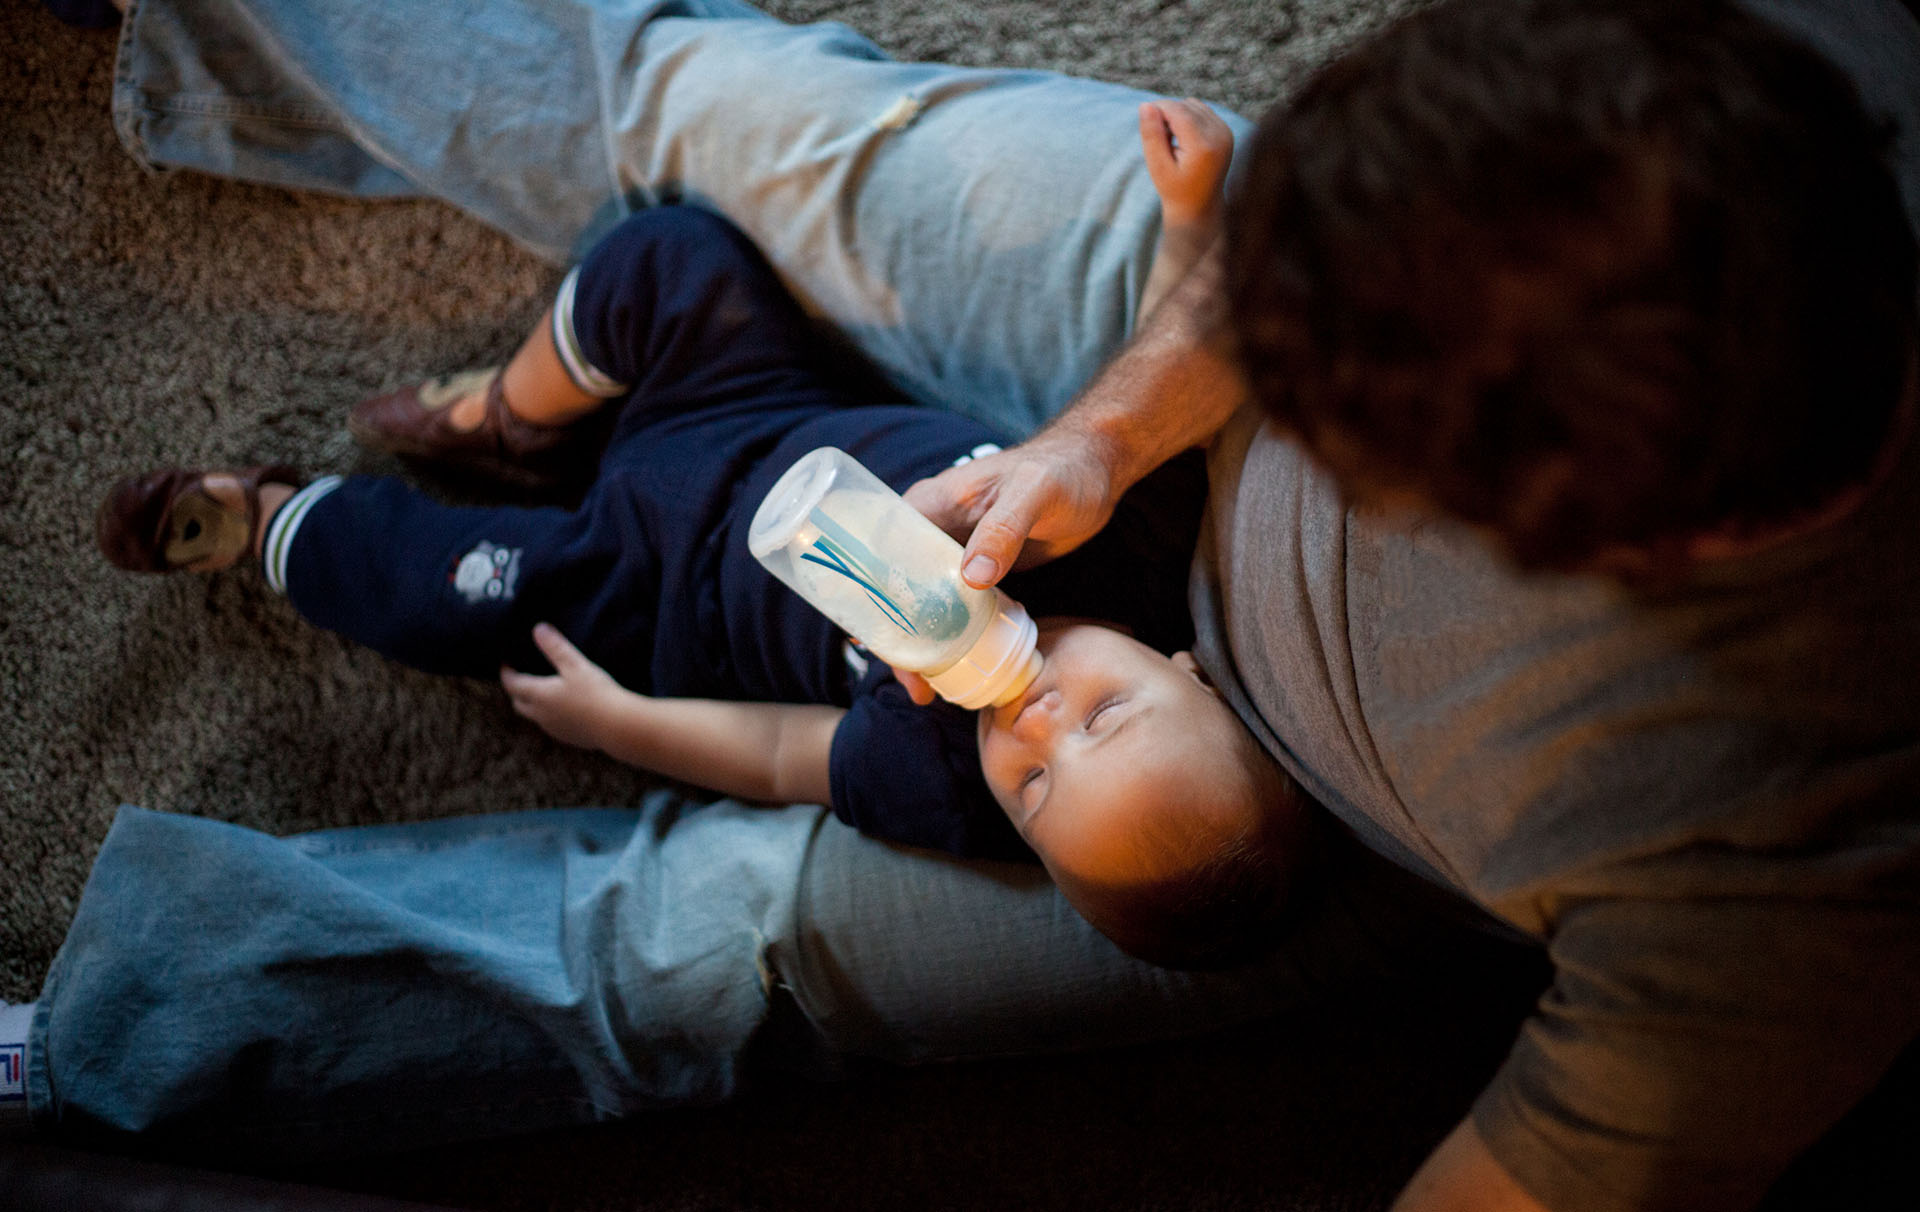 nhs to offer mental health checks to new dads